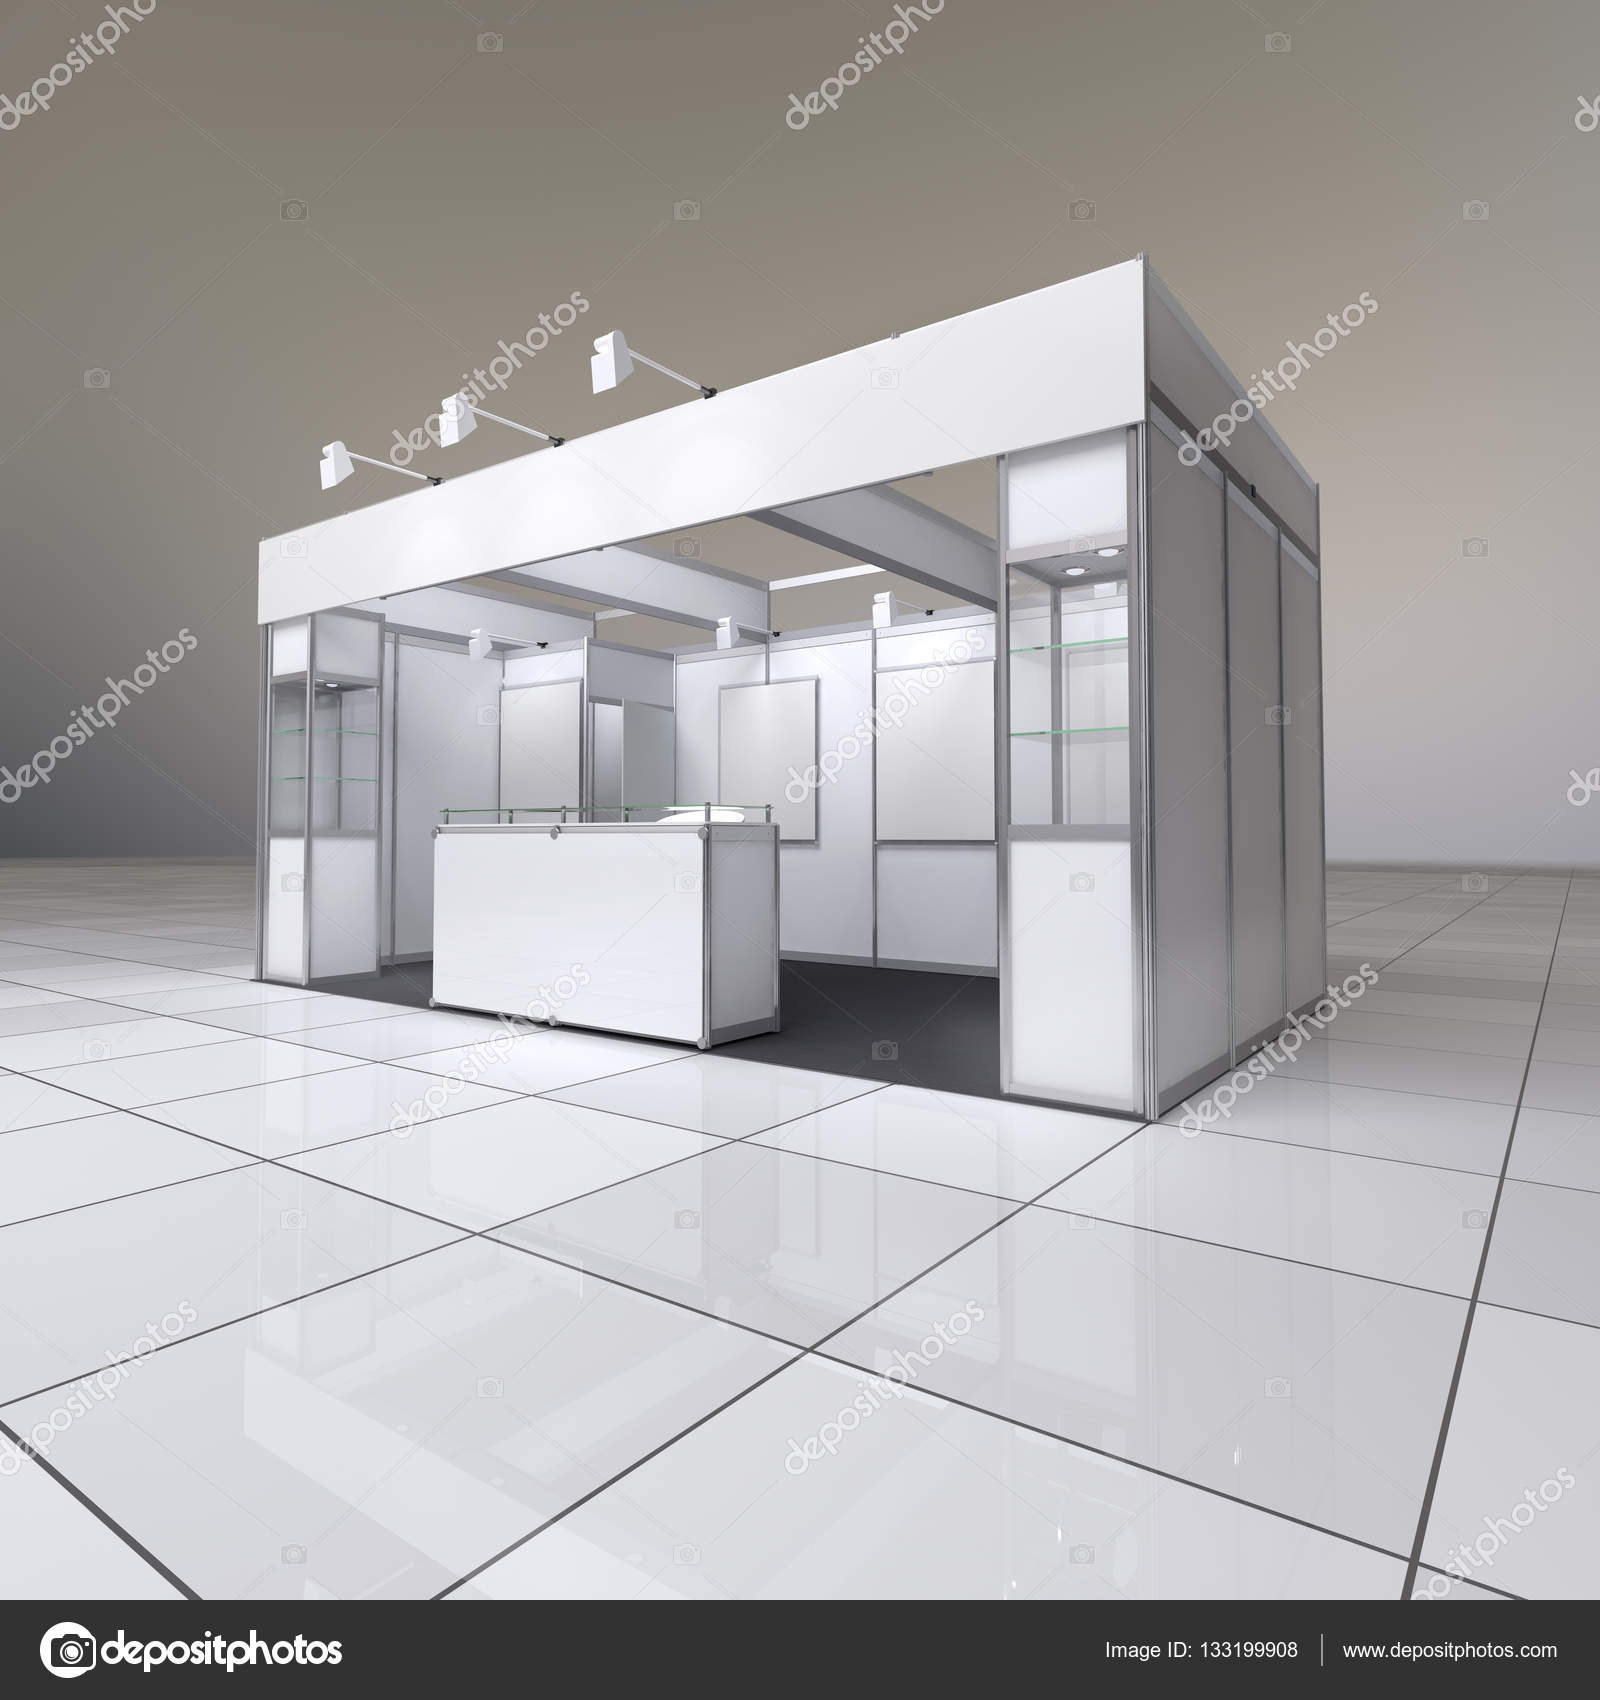 Exhibition Stand Reception : Abstract exhibition stand u2014 stock photo © whitehoune #133199908